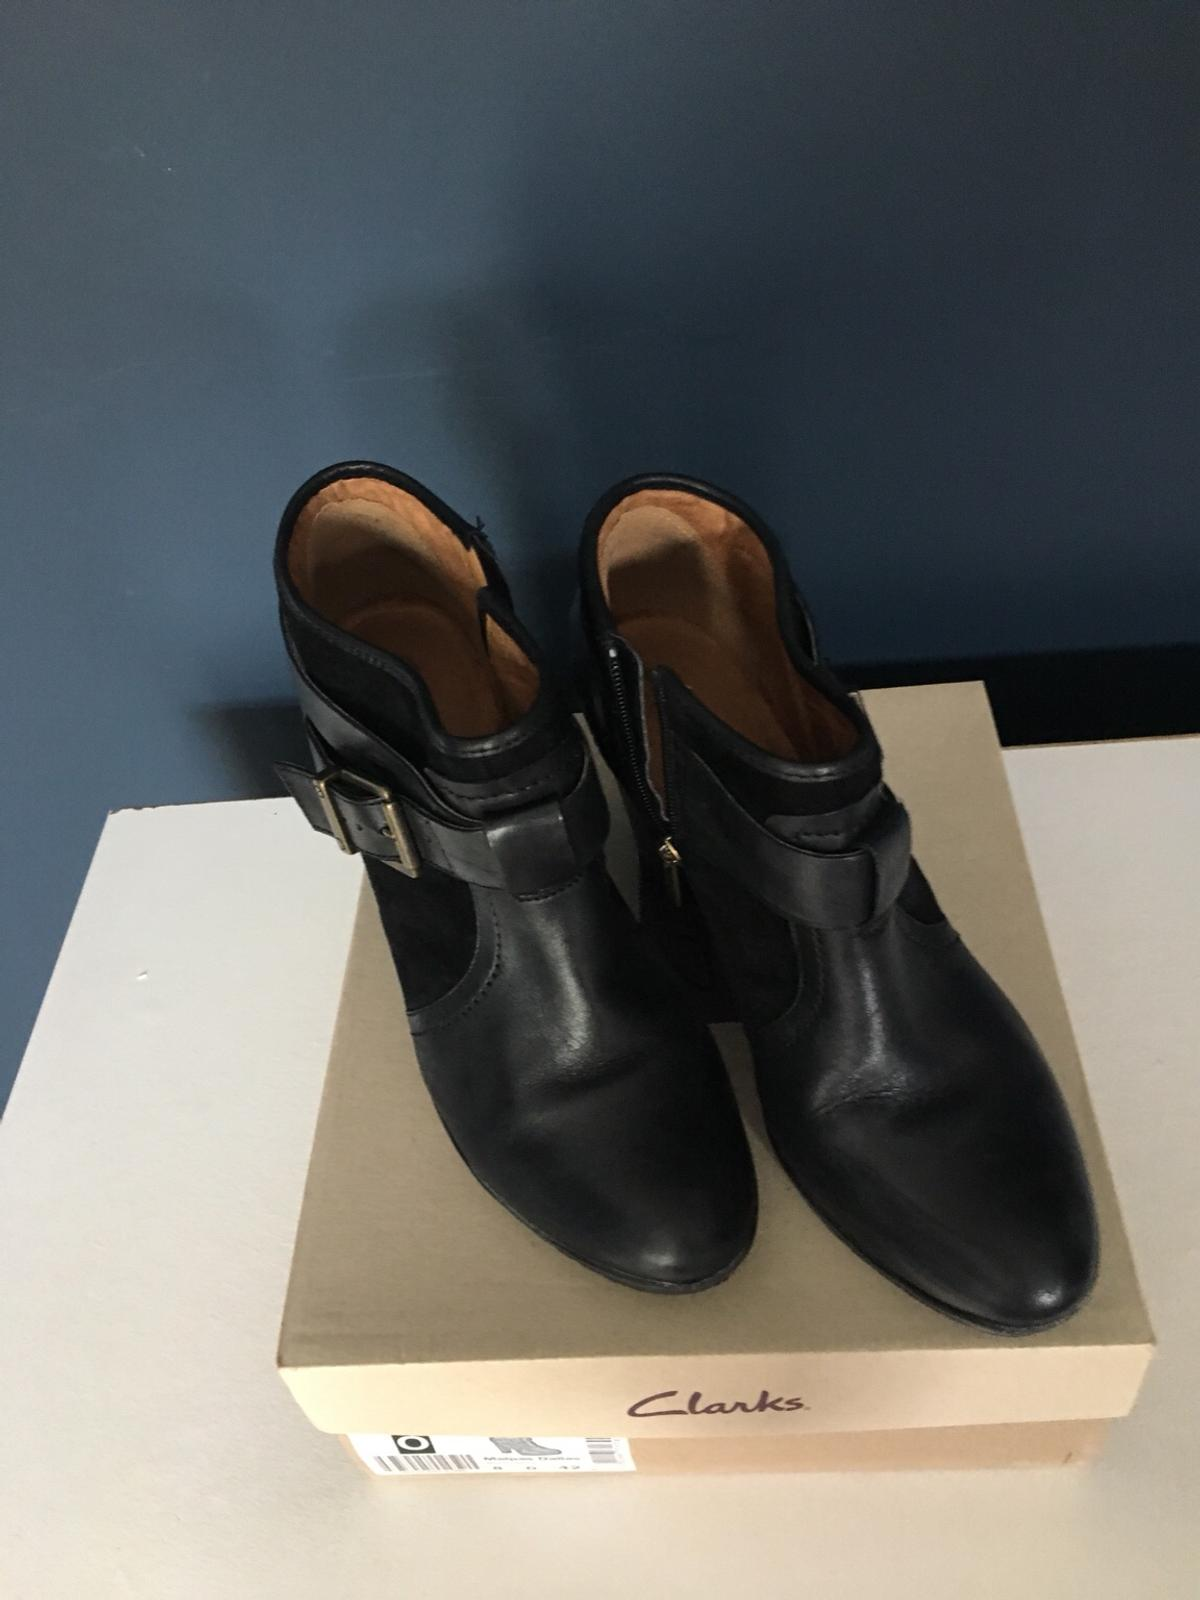 Clarks Size 8 Black Leather Ankle Boots